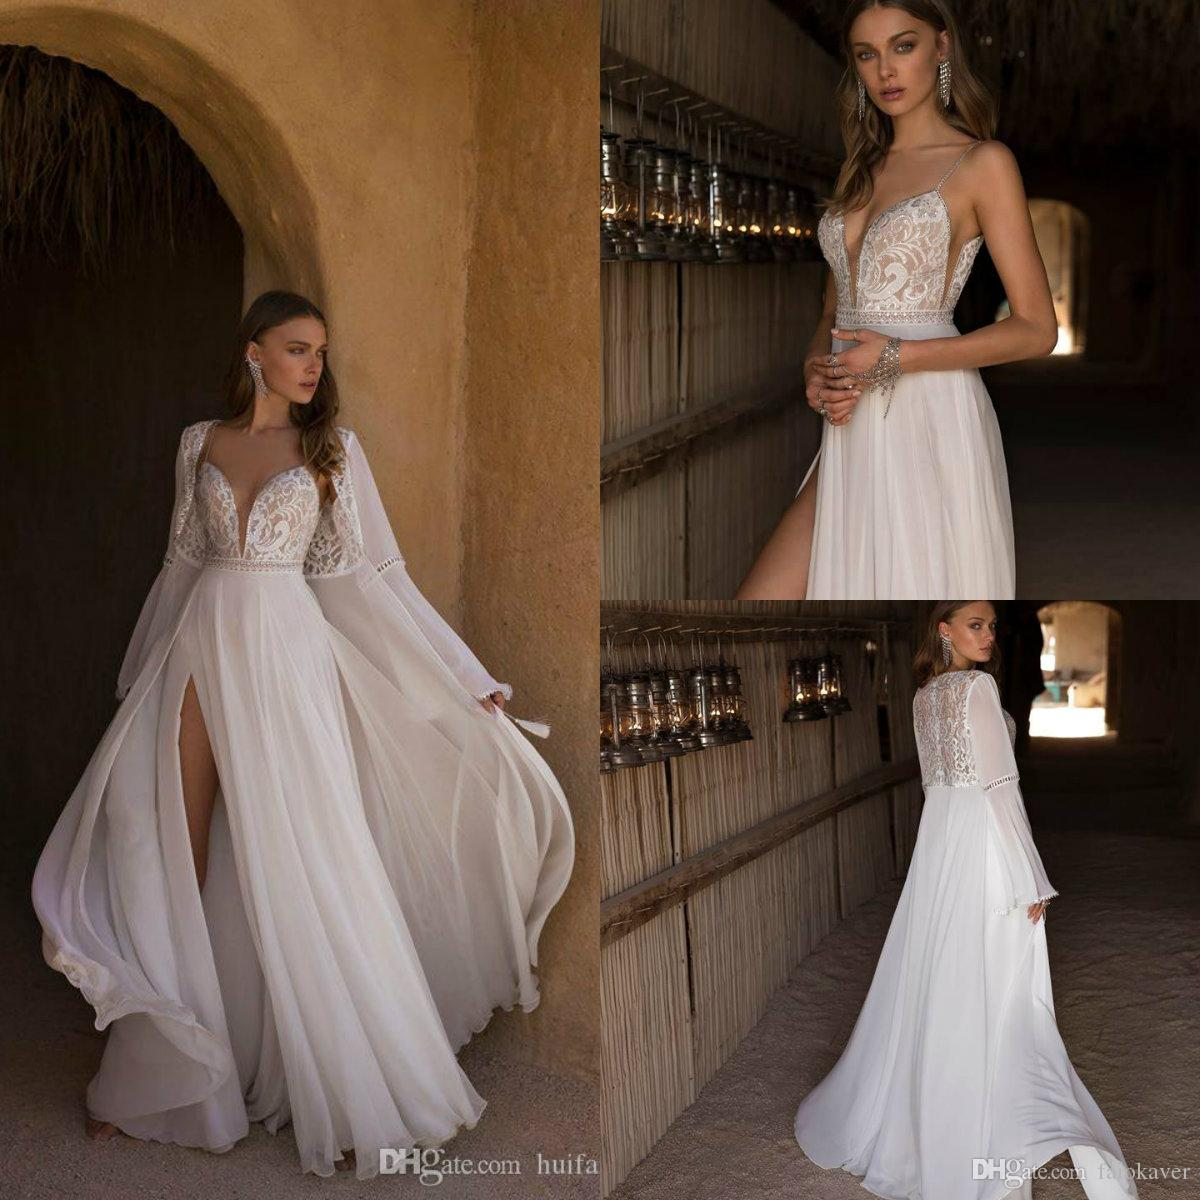 Chic Asaf Dadush 2019 Beach Wedding Dresses Spaghetti Lace Beaded Boho Bridal Gowns With Long Jacket Custom Made Bohemian Wedding Dress